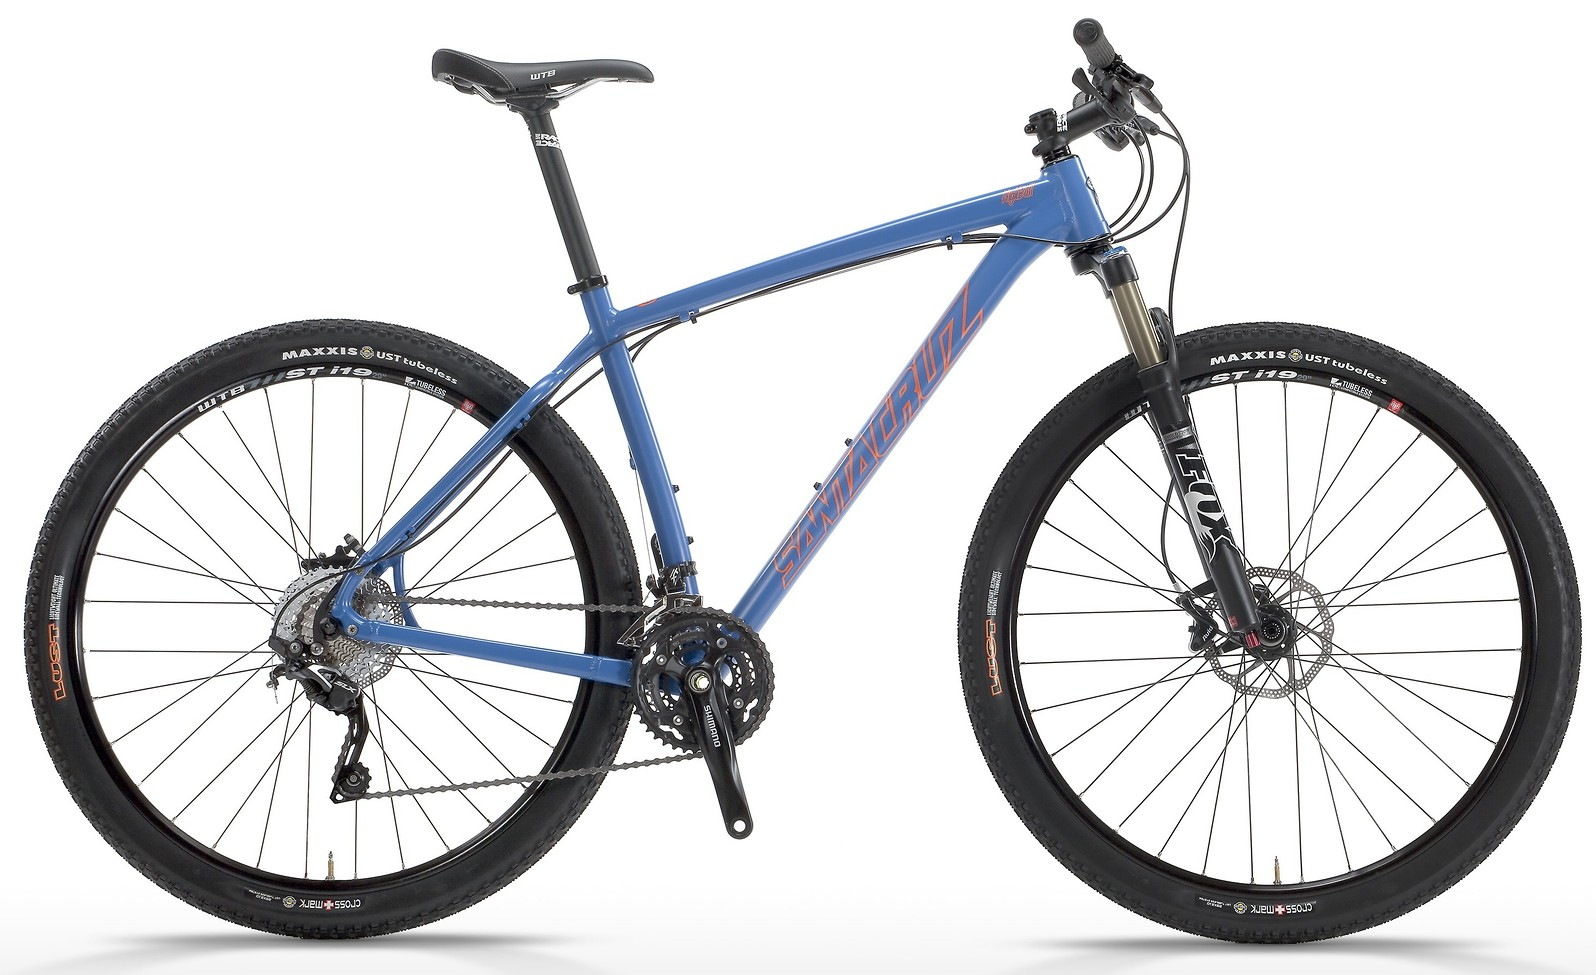 2014 Santa Cruz Highball SPX XC 29 Bike 2013 HIGHBALLcatalogflat